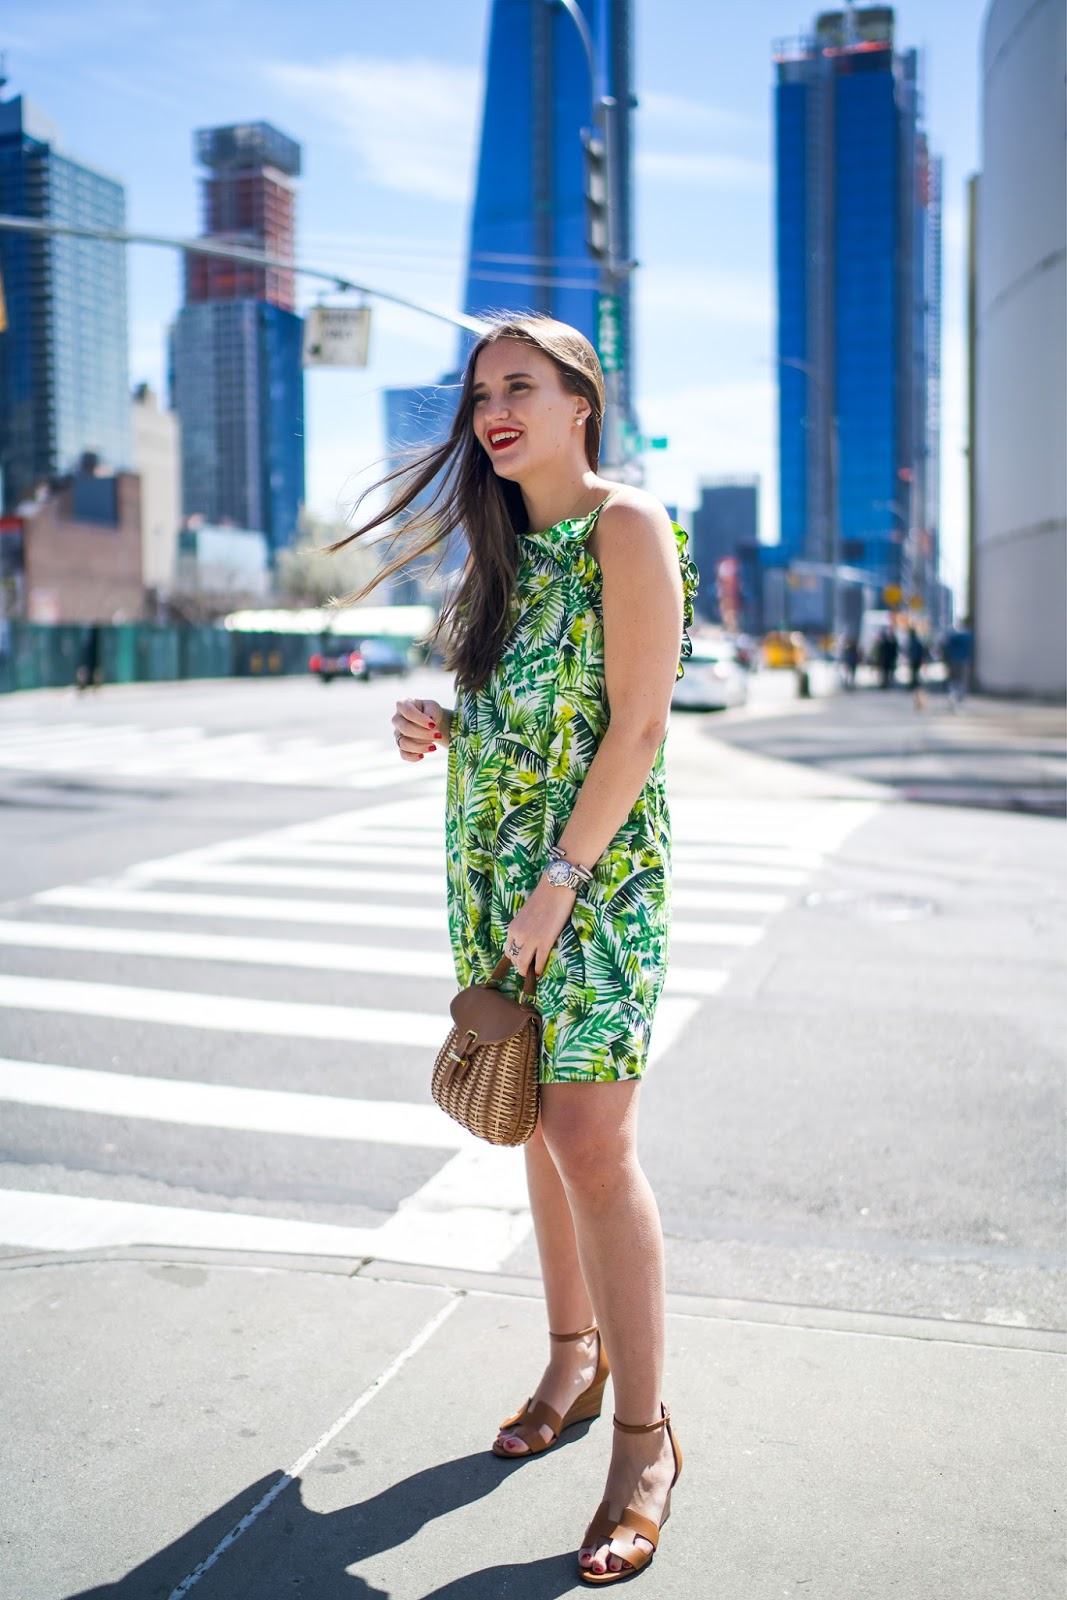 Banana Leaf Dress Under $100 styled by popular New York fashion blogger, Covering the Bases